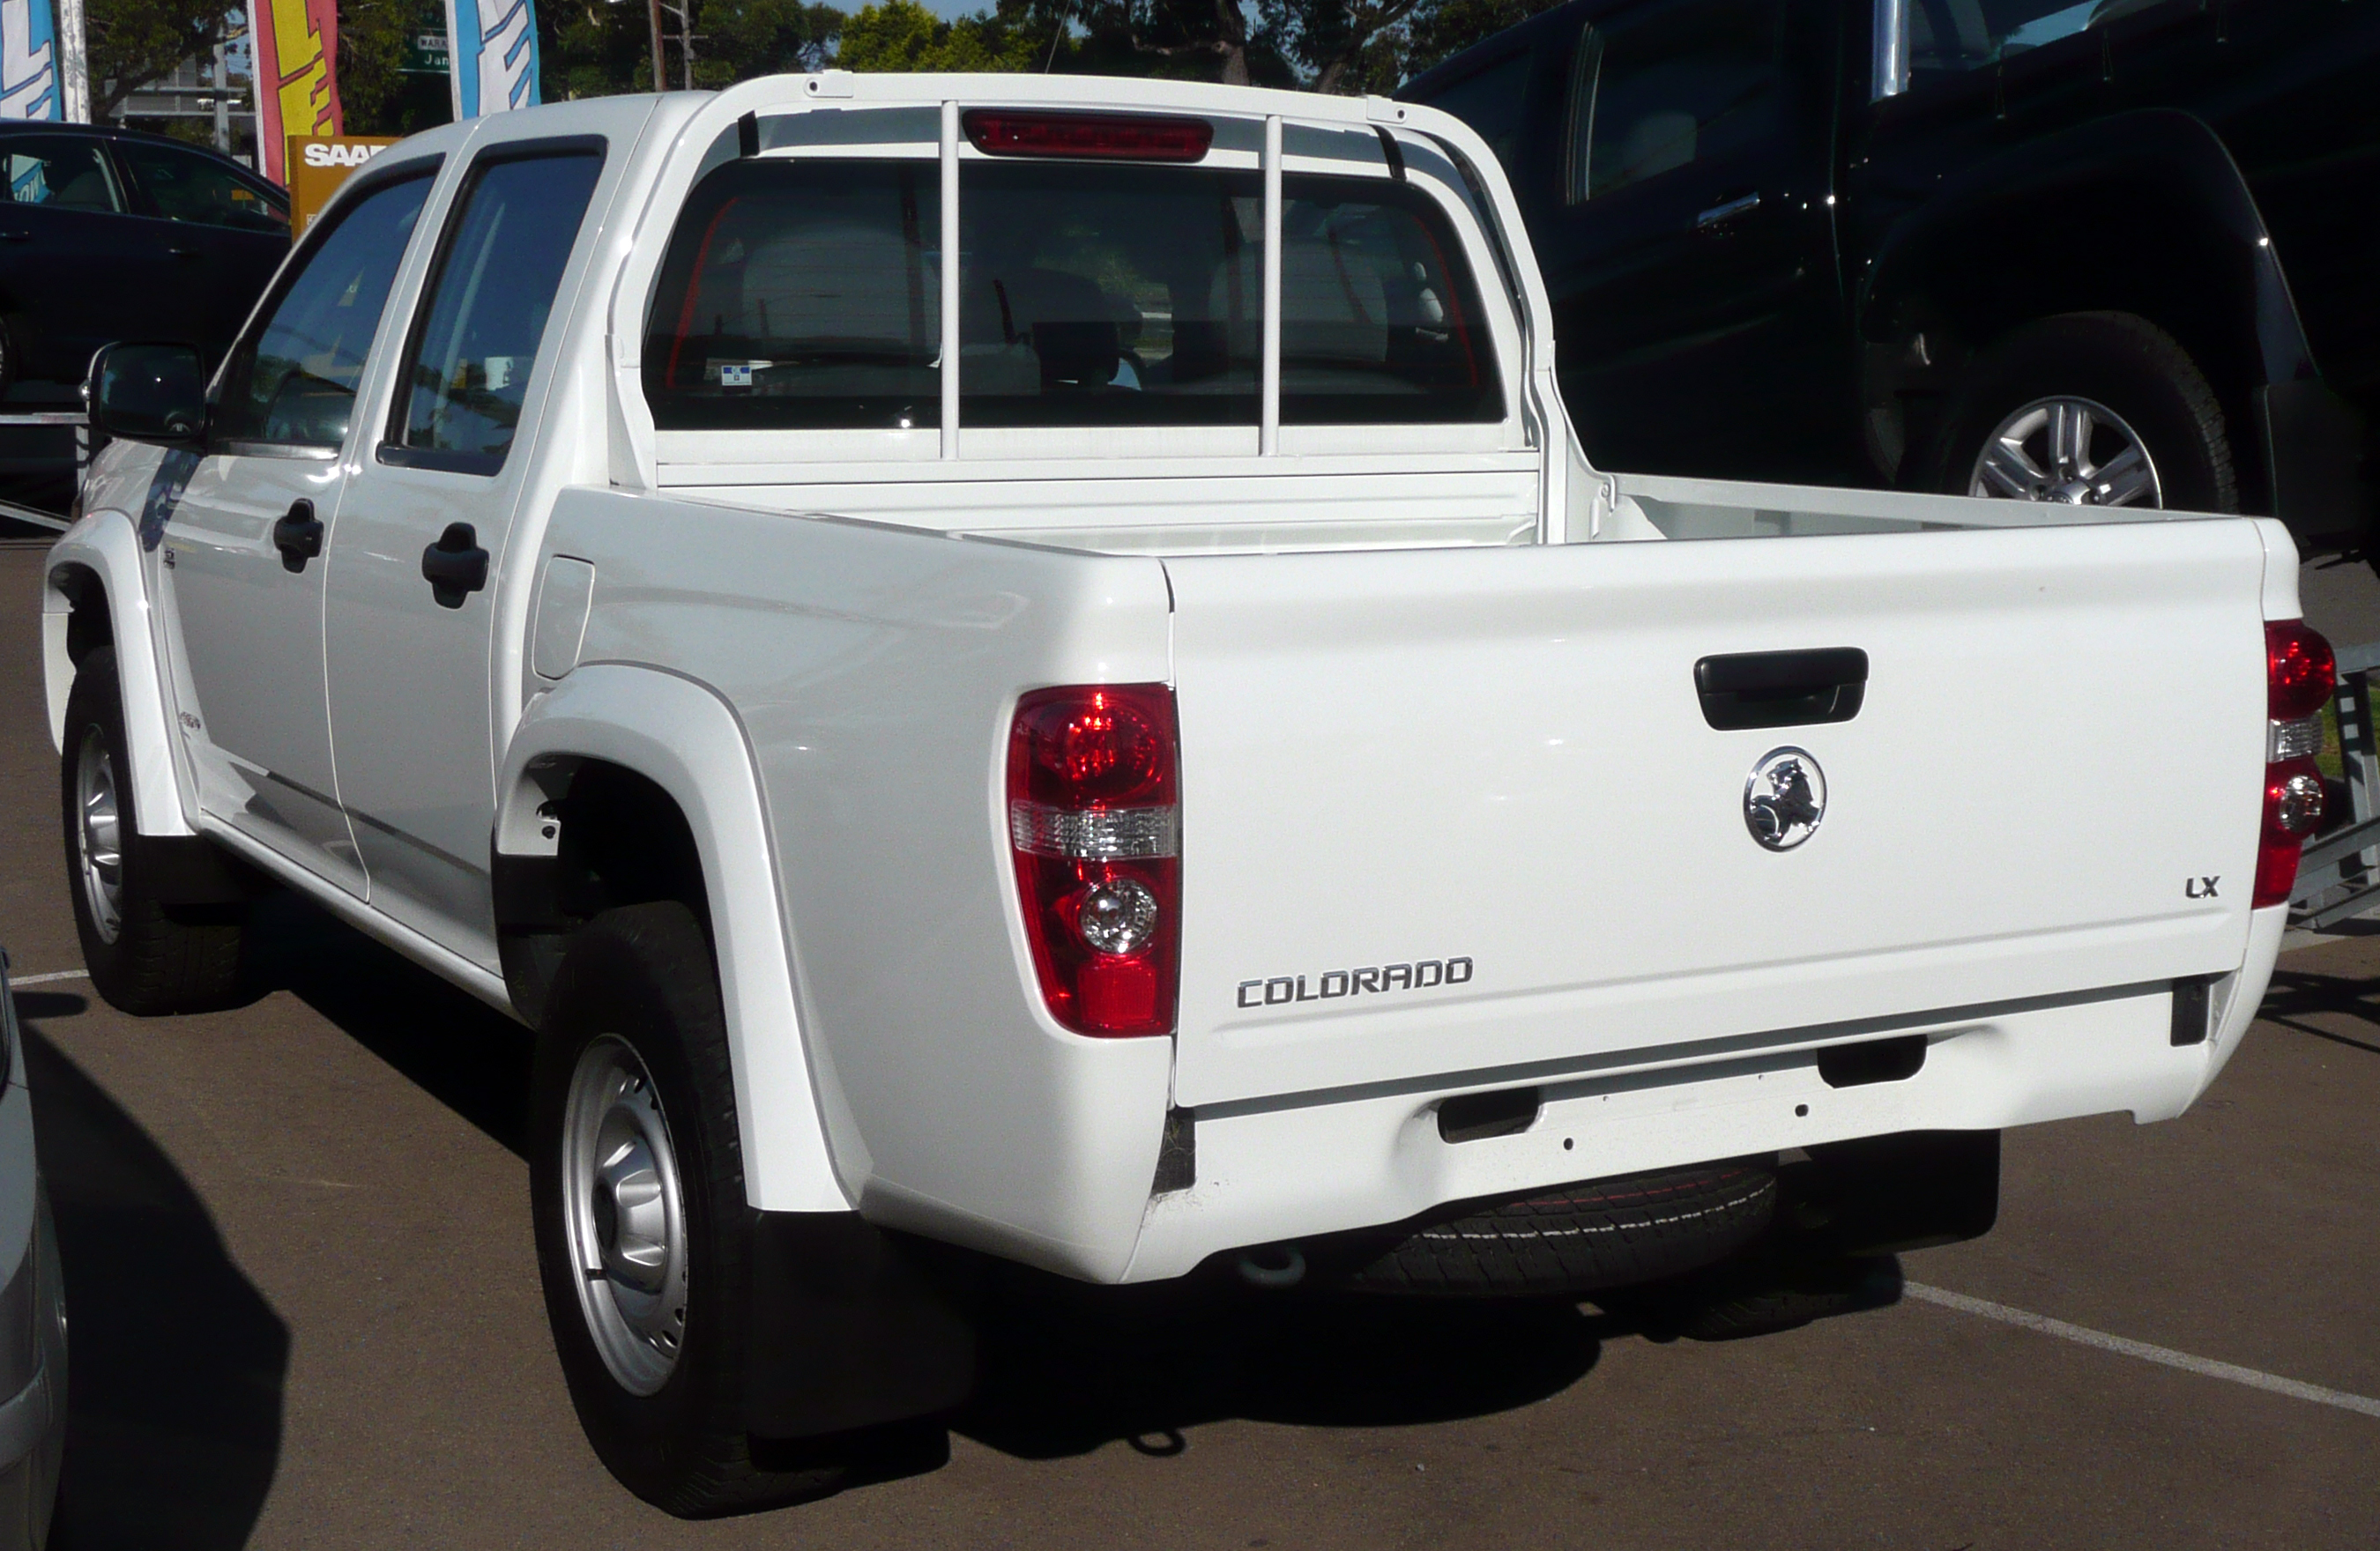 2008 Holden RC Colorado LX Crew Cab 4-door utility (Australia)